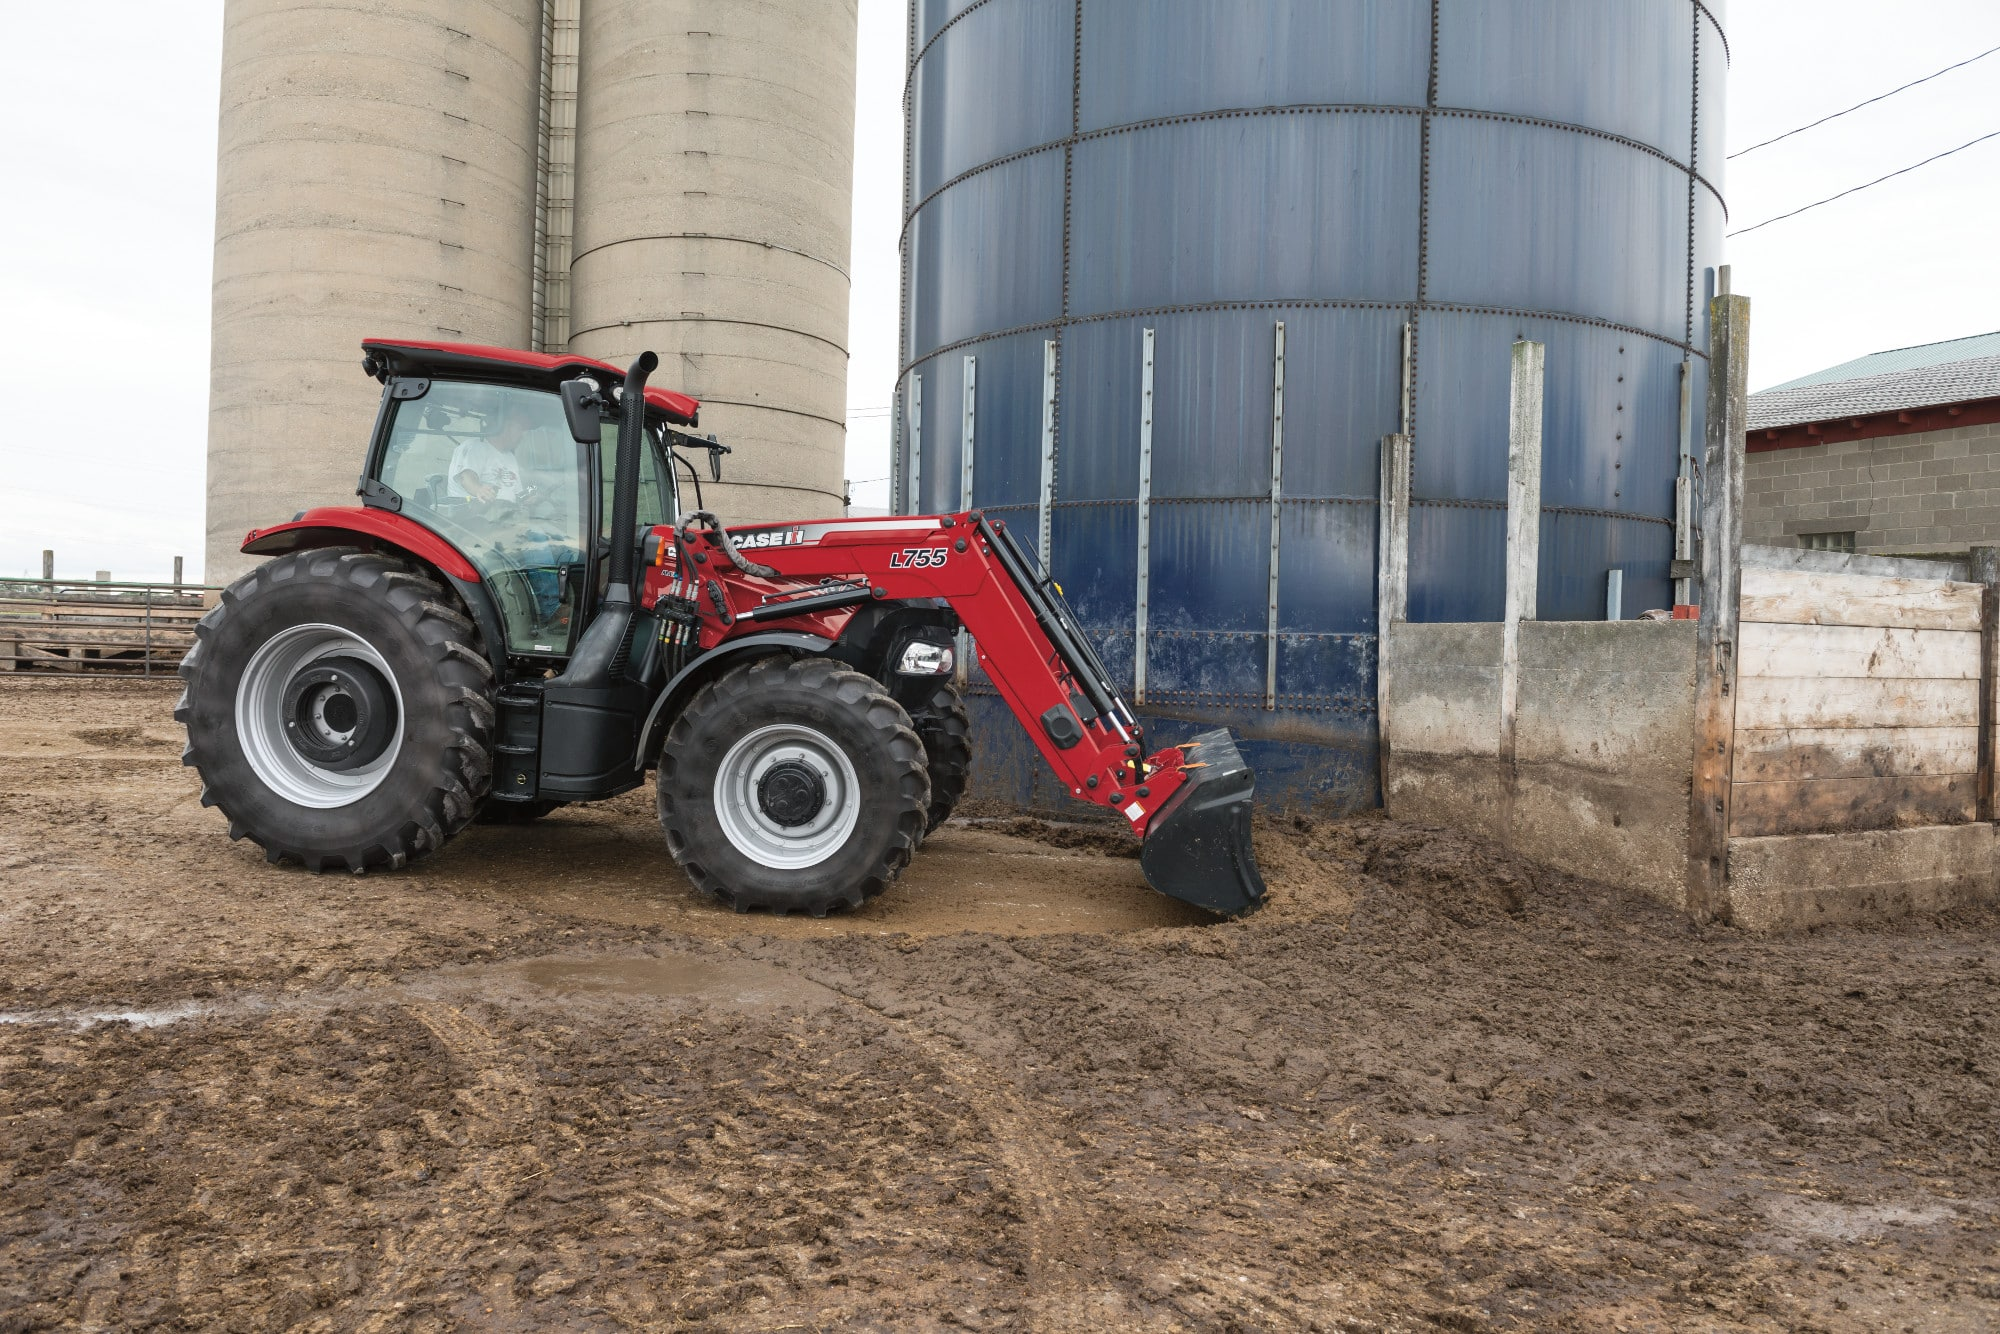 Maxxum 135 CVT_L755_1259_08 15?width=410&height=171 l705 series loaders farm loaders case ih